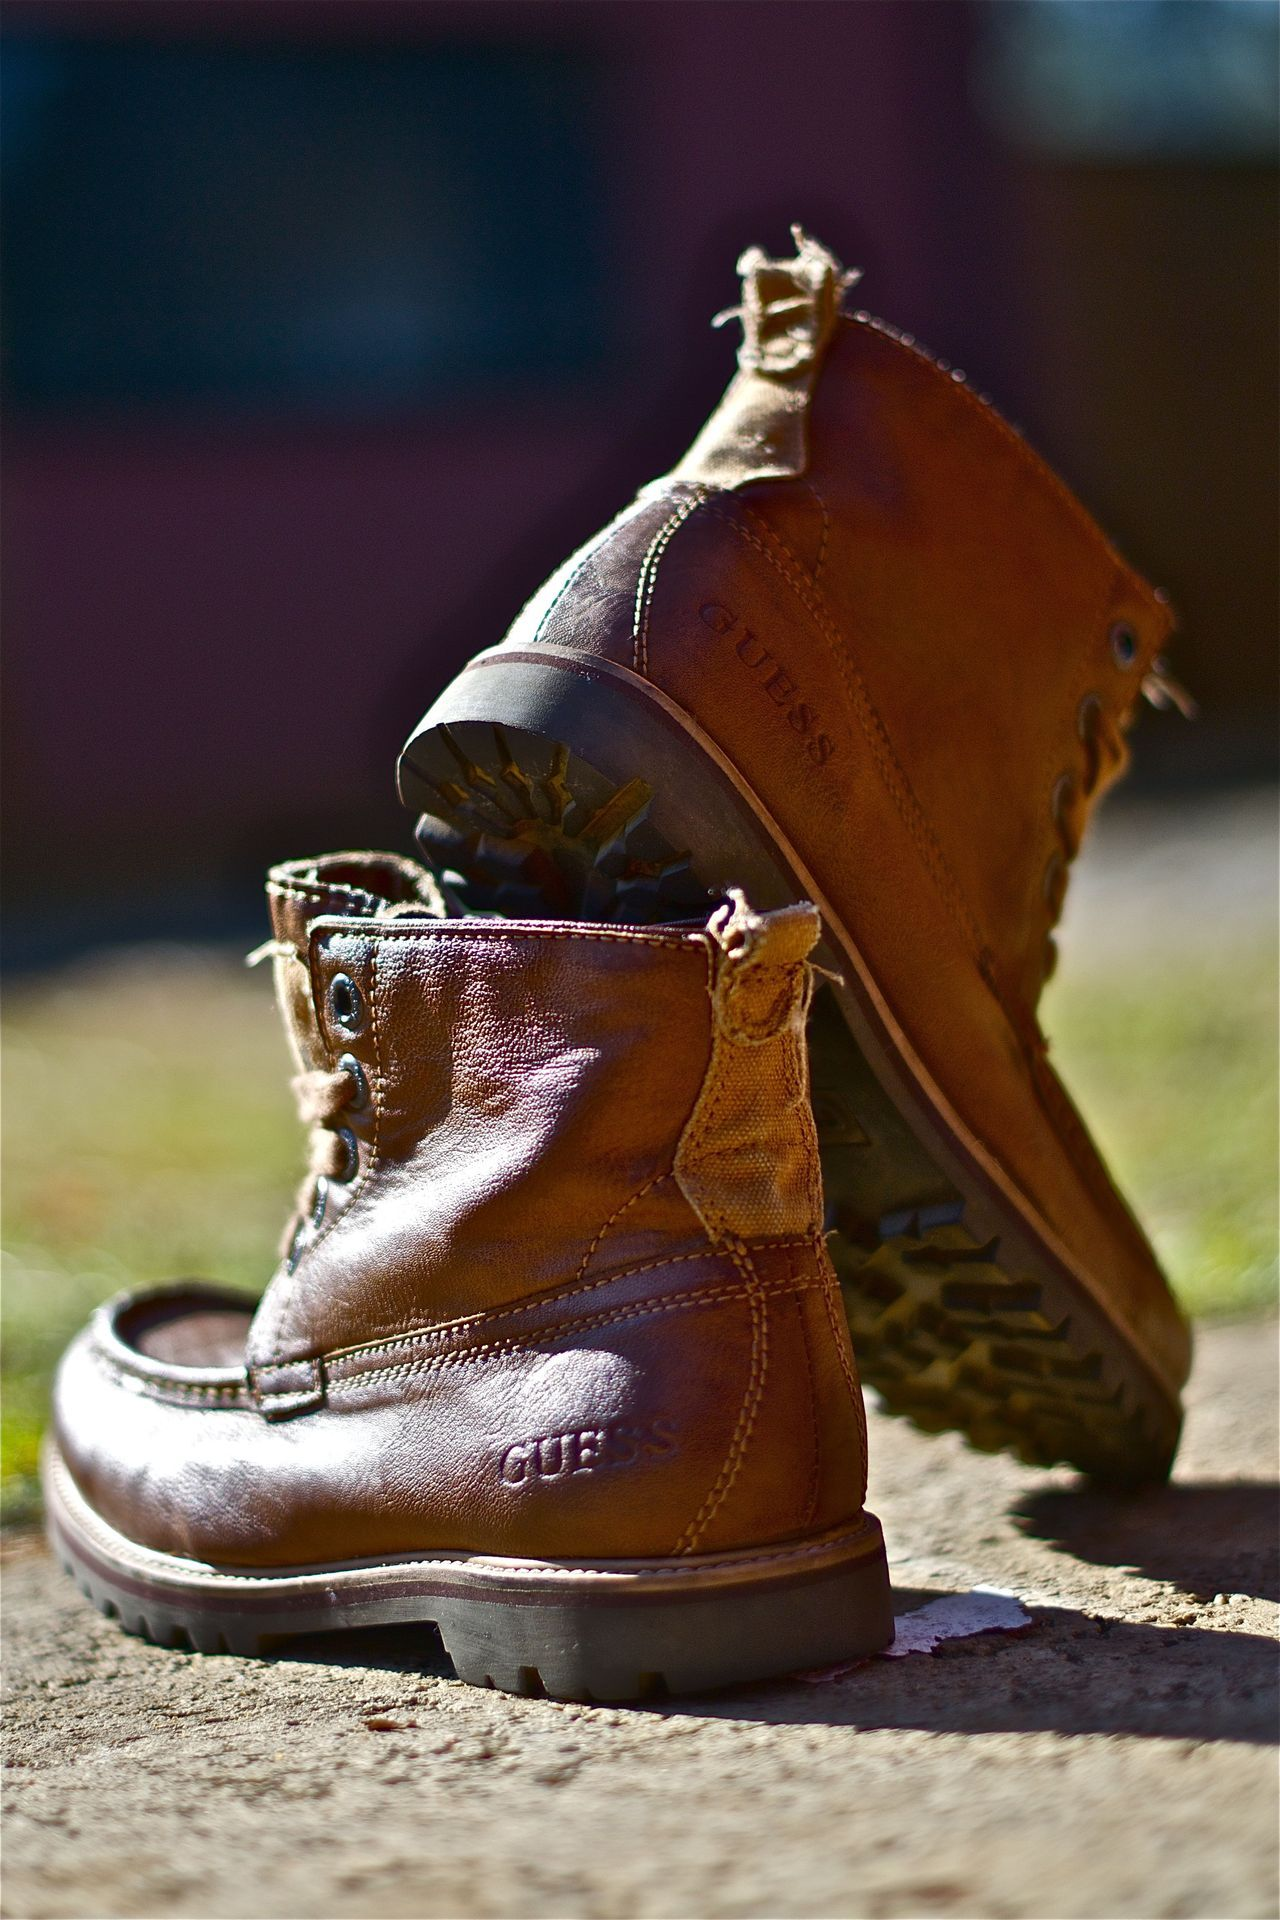 GUESS | COGNAC BOOTS Available at Stuttafords Photographed by: The Expressionist